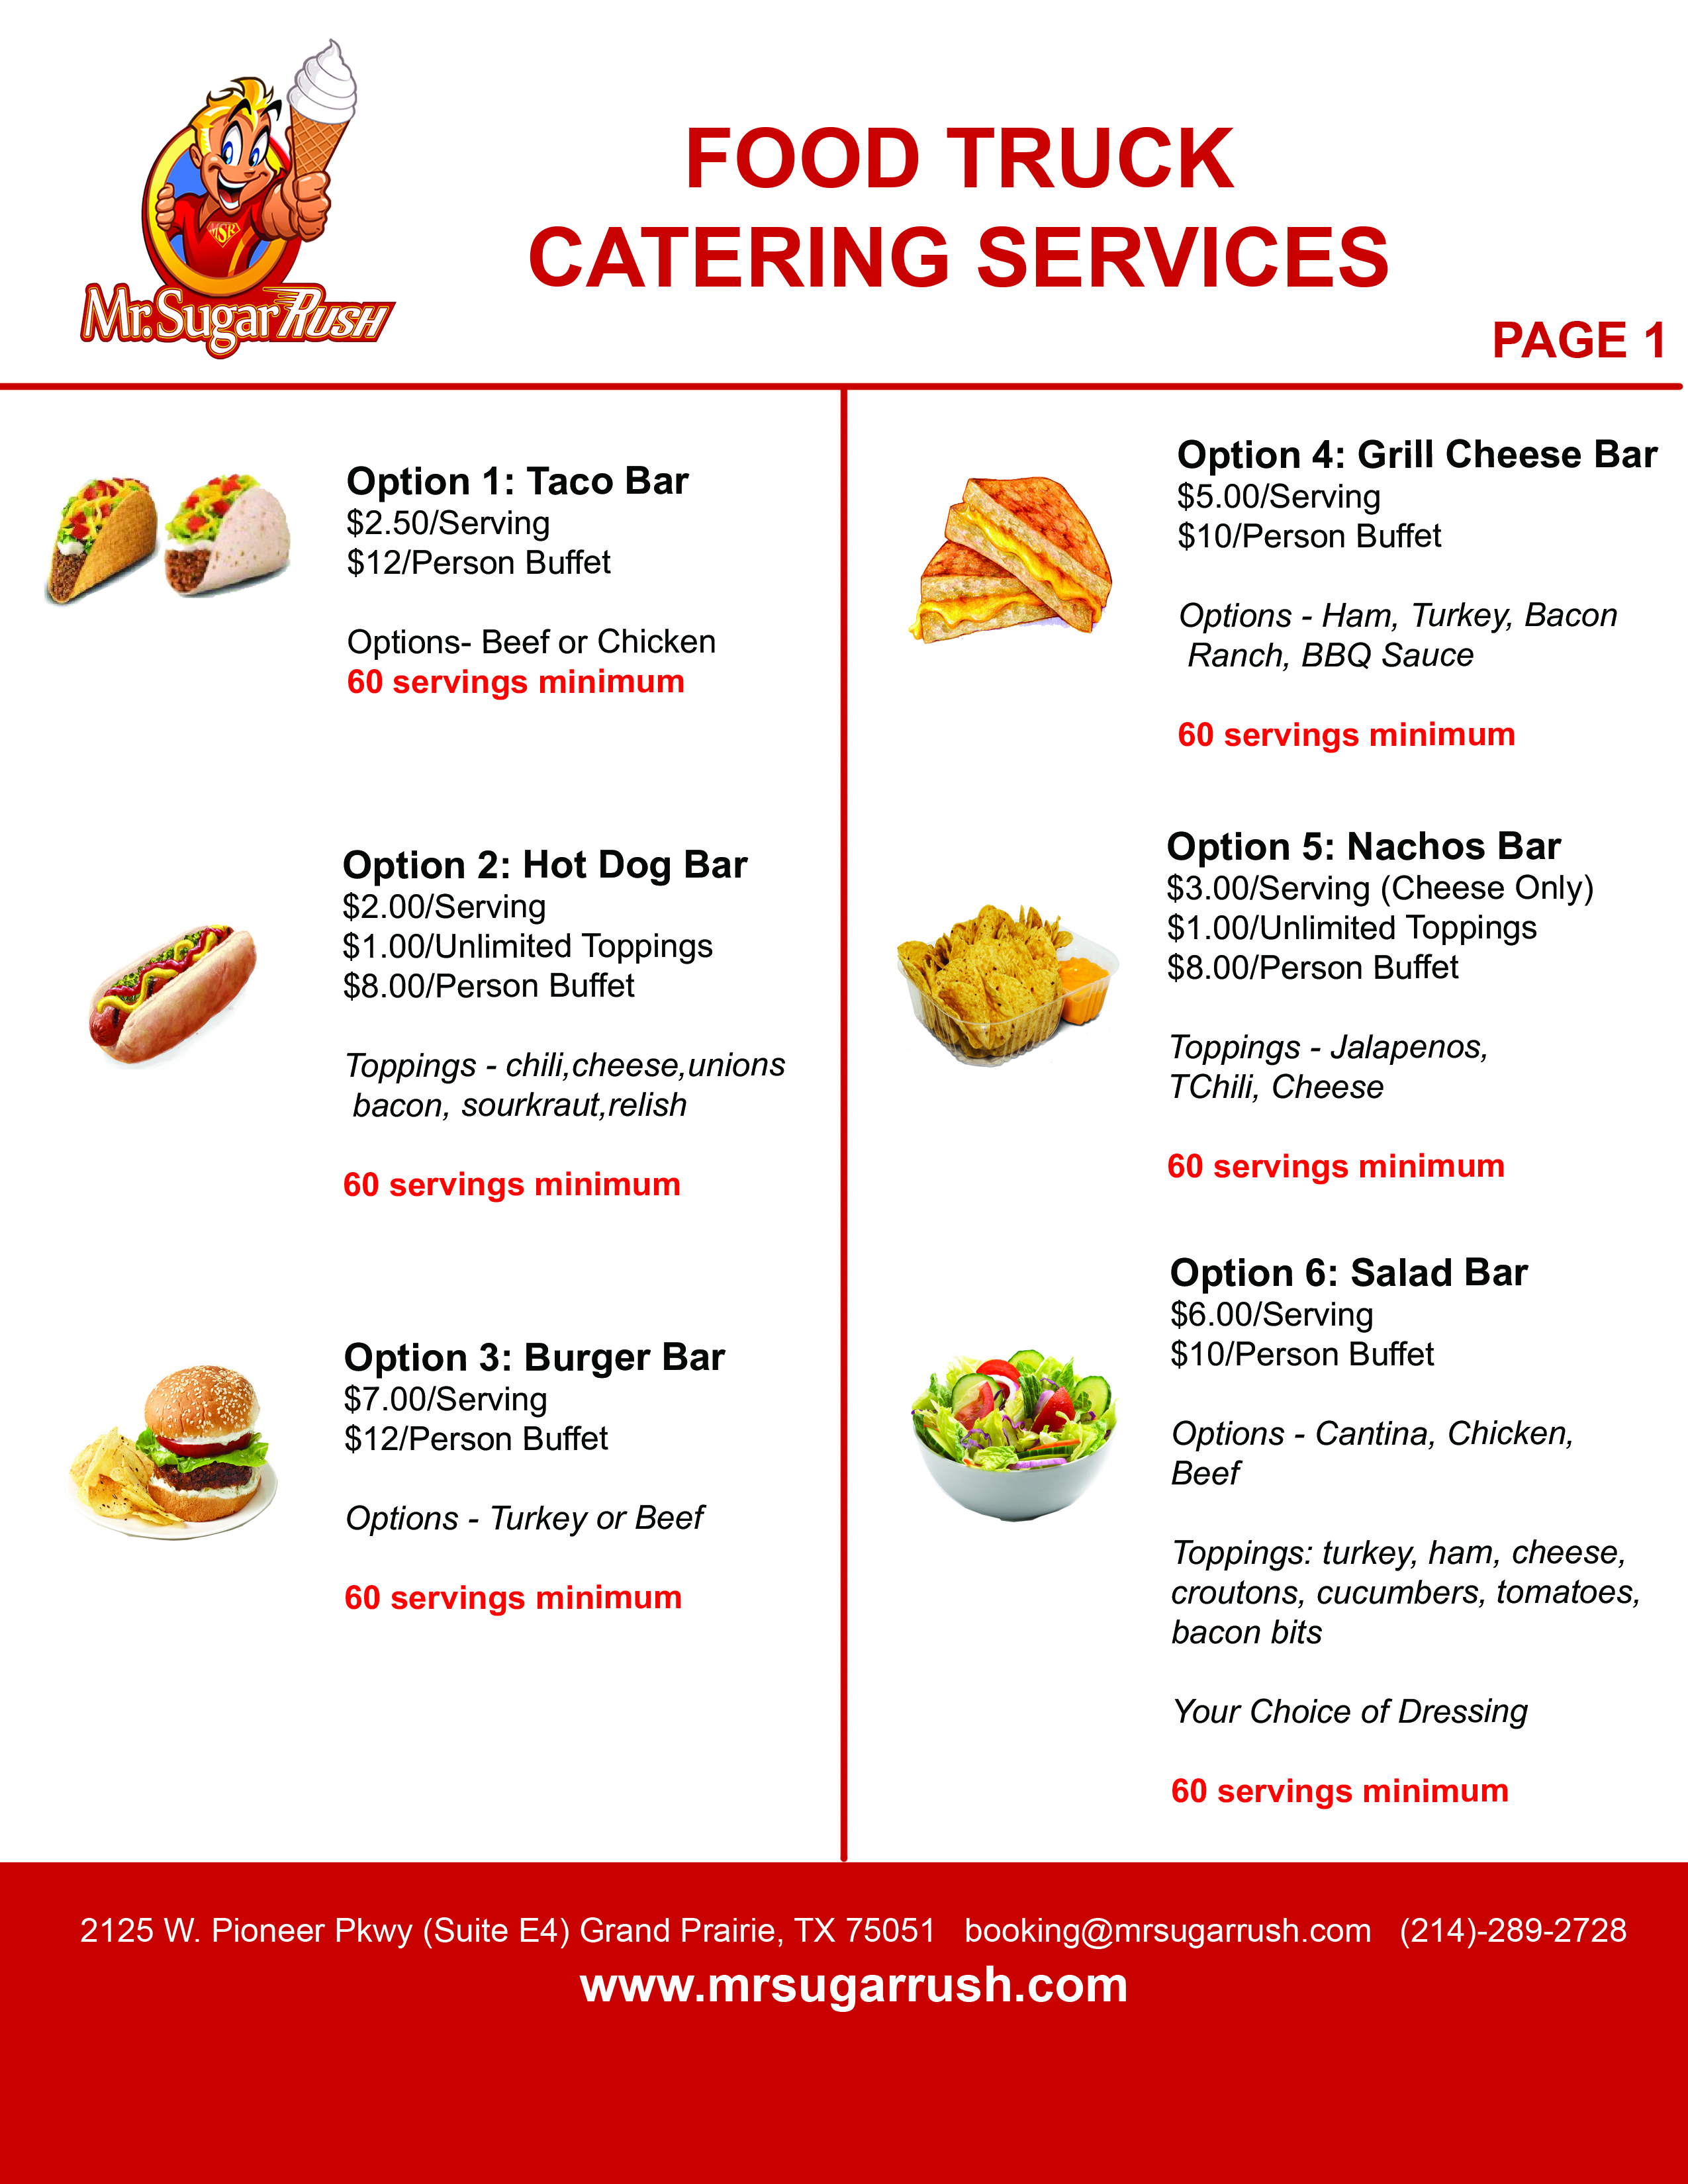 FOOD TRUCK PAGE 1 web